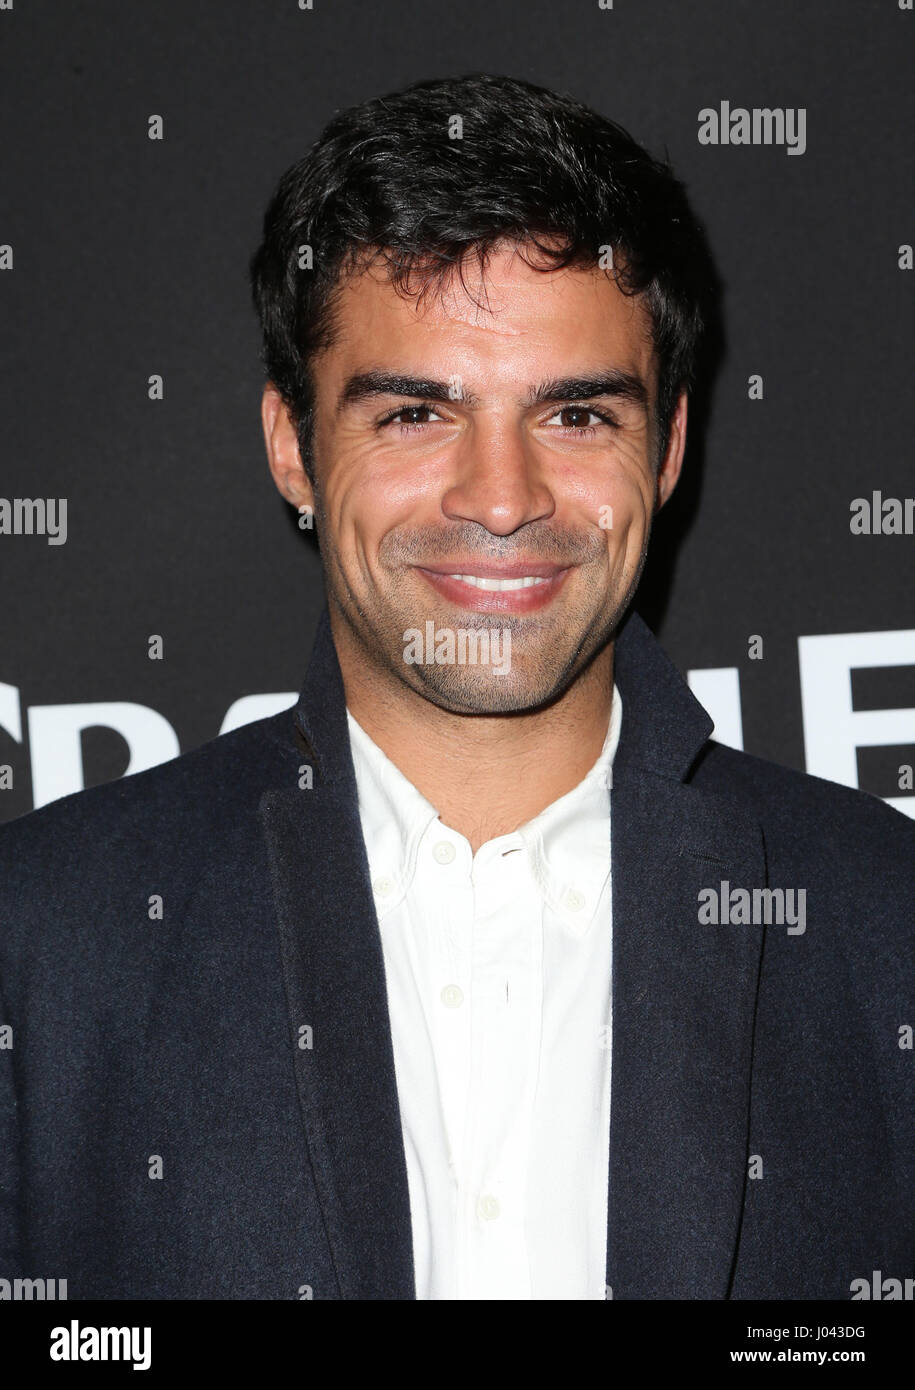 Premiere Screening of Crackle's 'Snatch'  Featuring: Sean Teale Where: Culver City, California, United - Stock Image